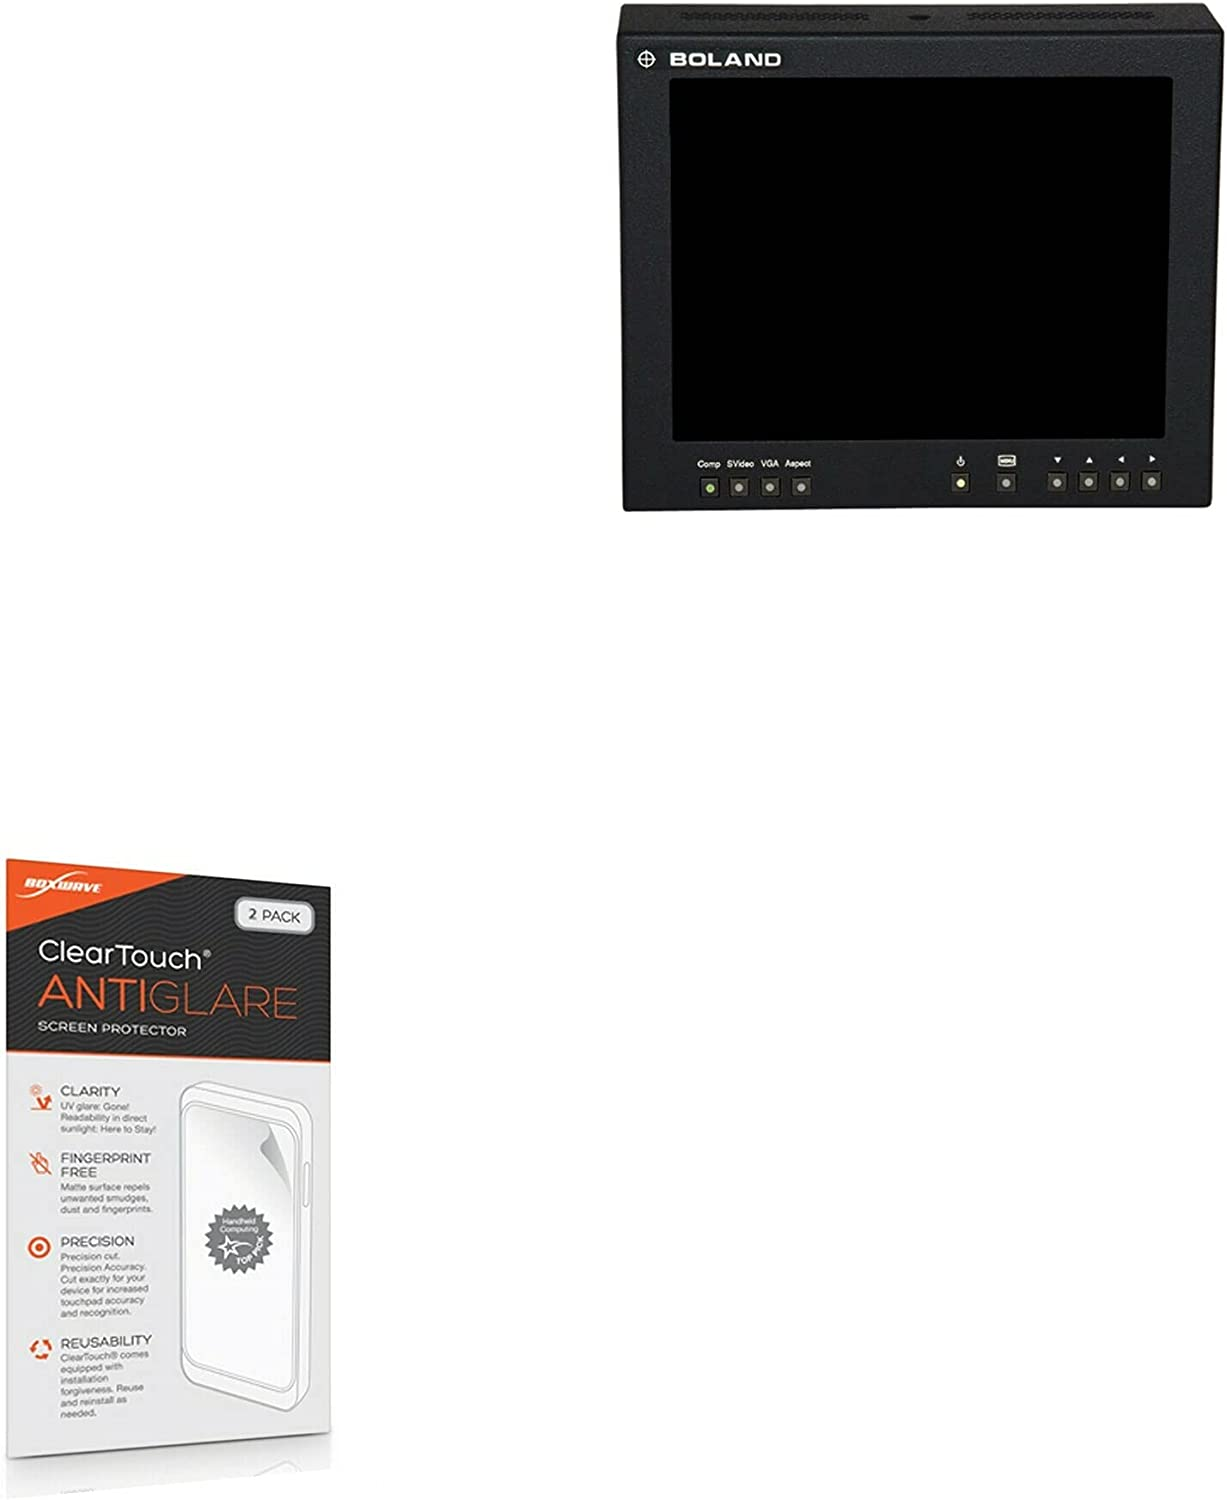 Boland xd08LDB Inventory cleanup selling sale price Screen Protector Anti-Glare ClearTouch BoxWave